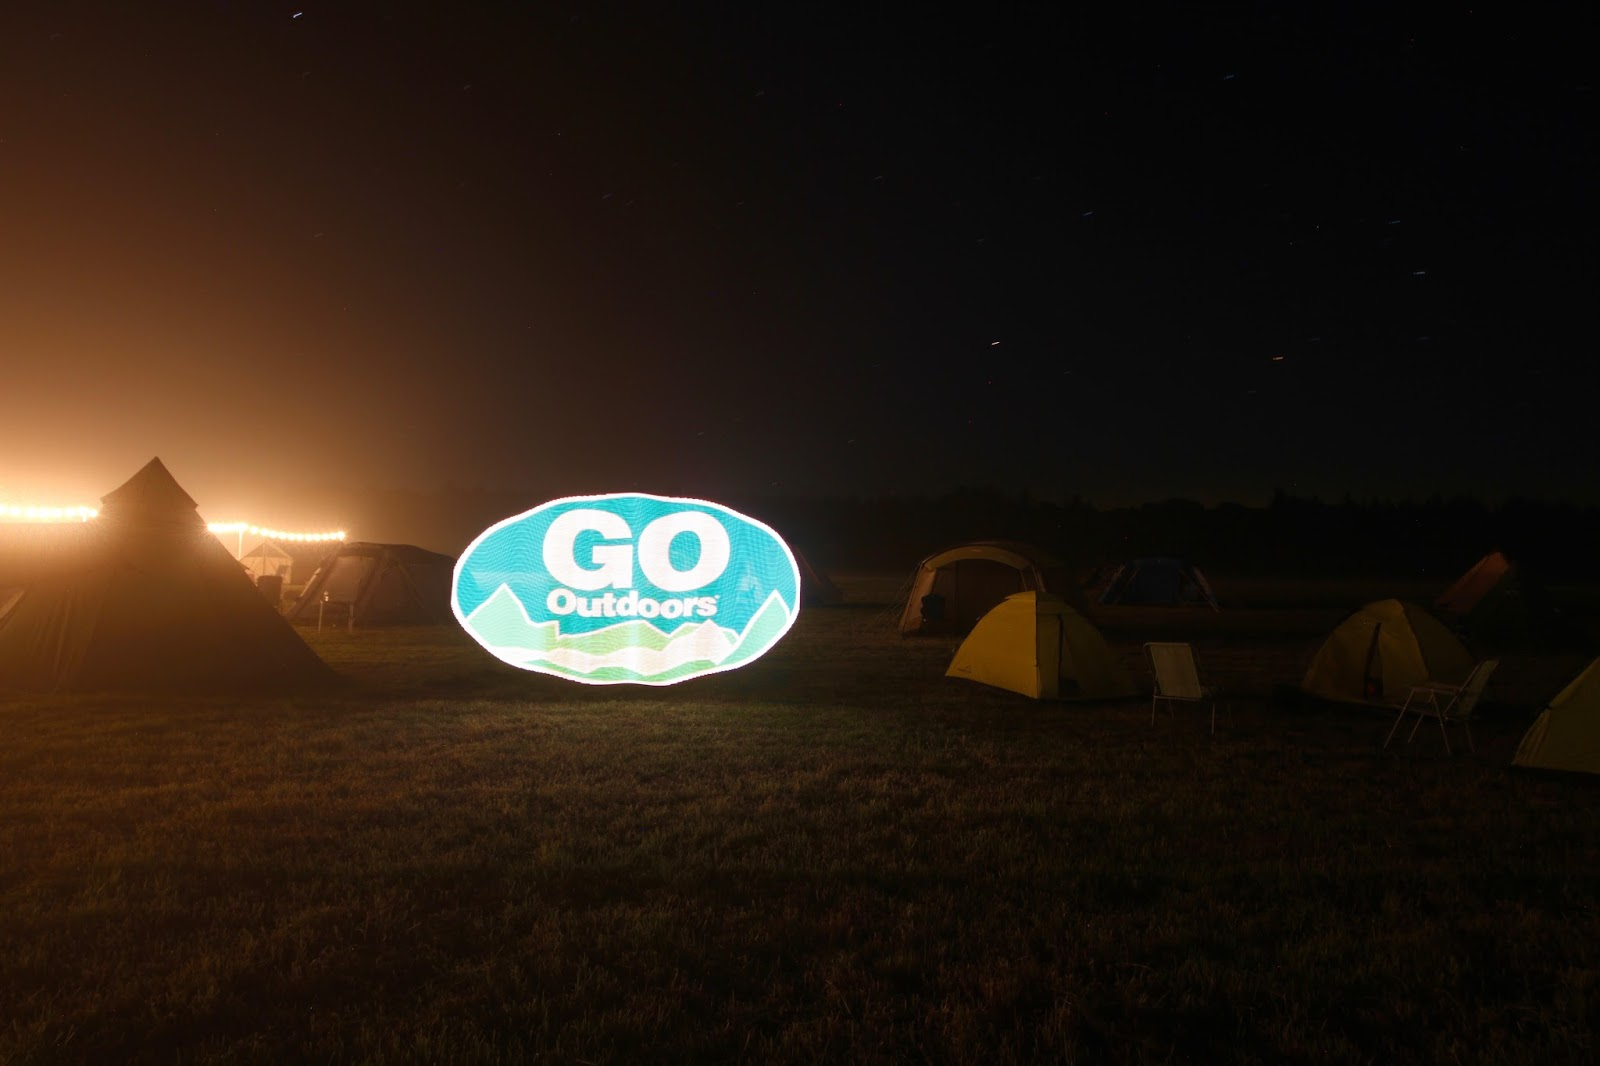 GO Outdoors light up sign at the #GOcation